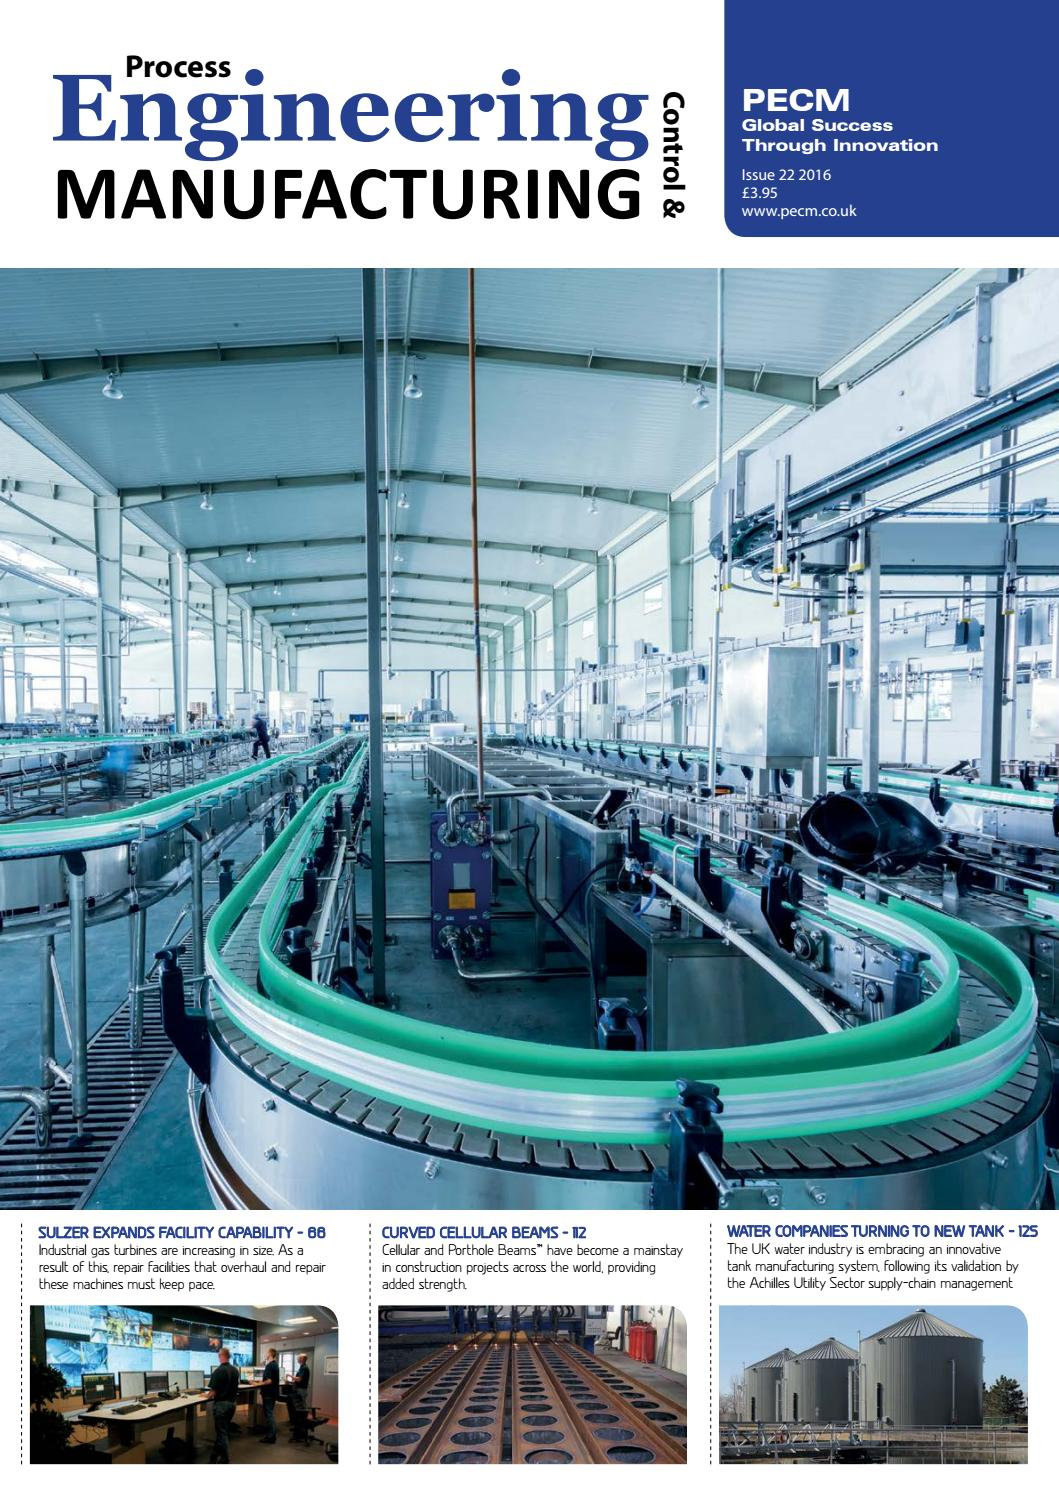 PECM - Issue 22 2016 by MH Media Global - issuu